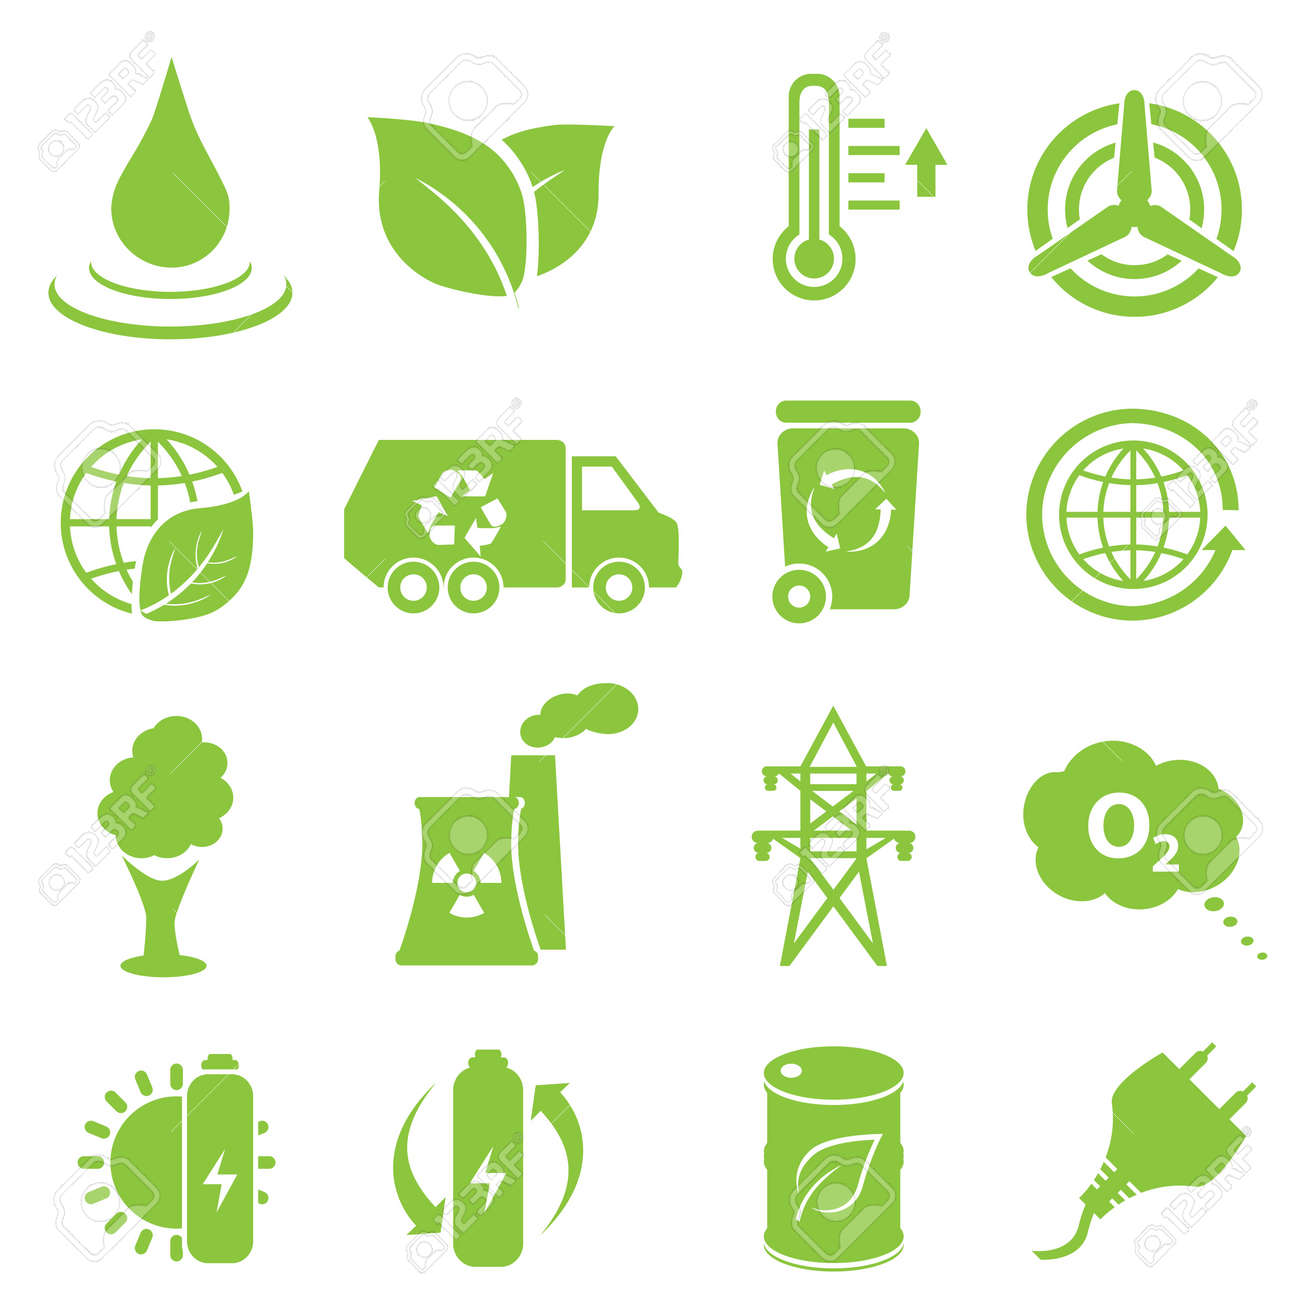 Ecology and environment icon set - 16318885